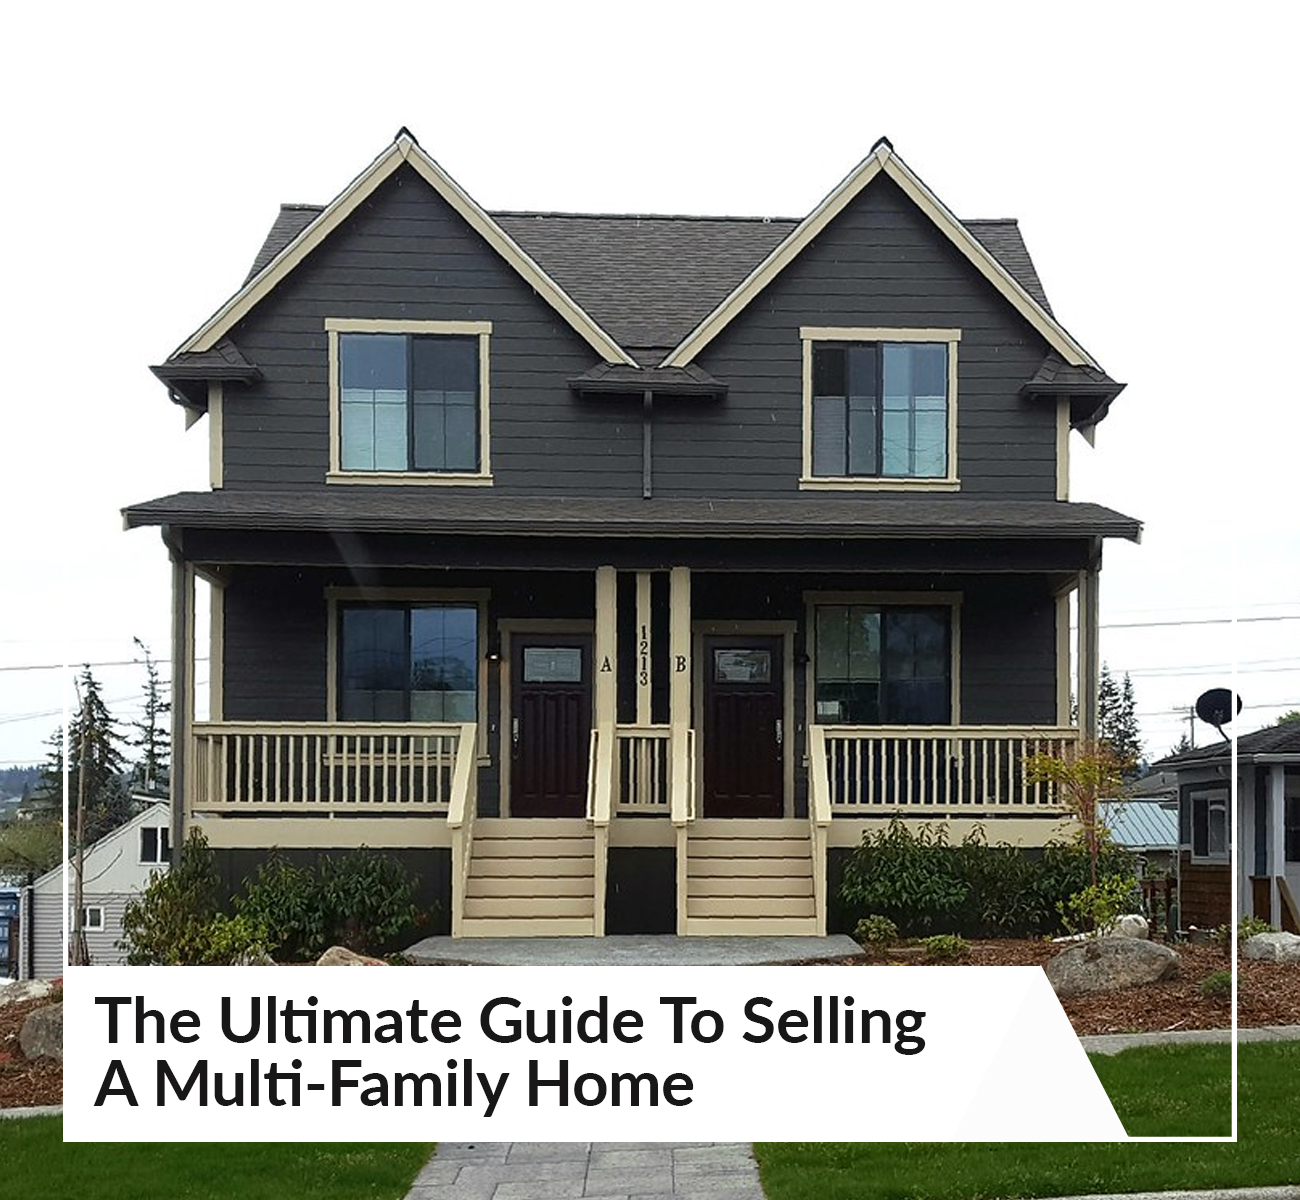 The Ultimate Guide To Selling A Multi-Family Home